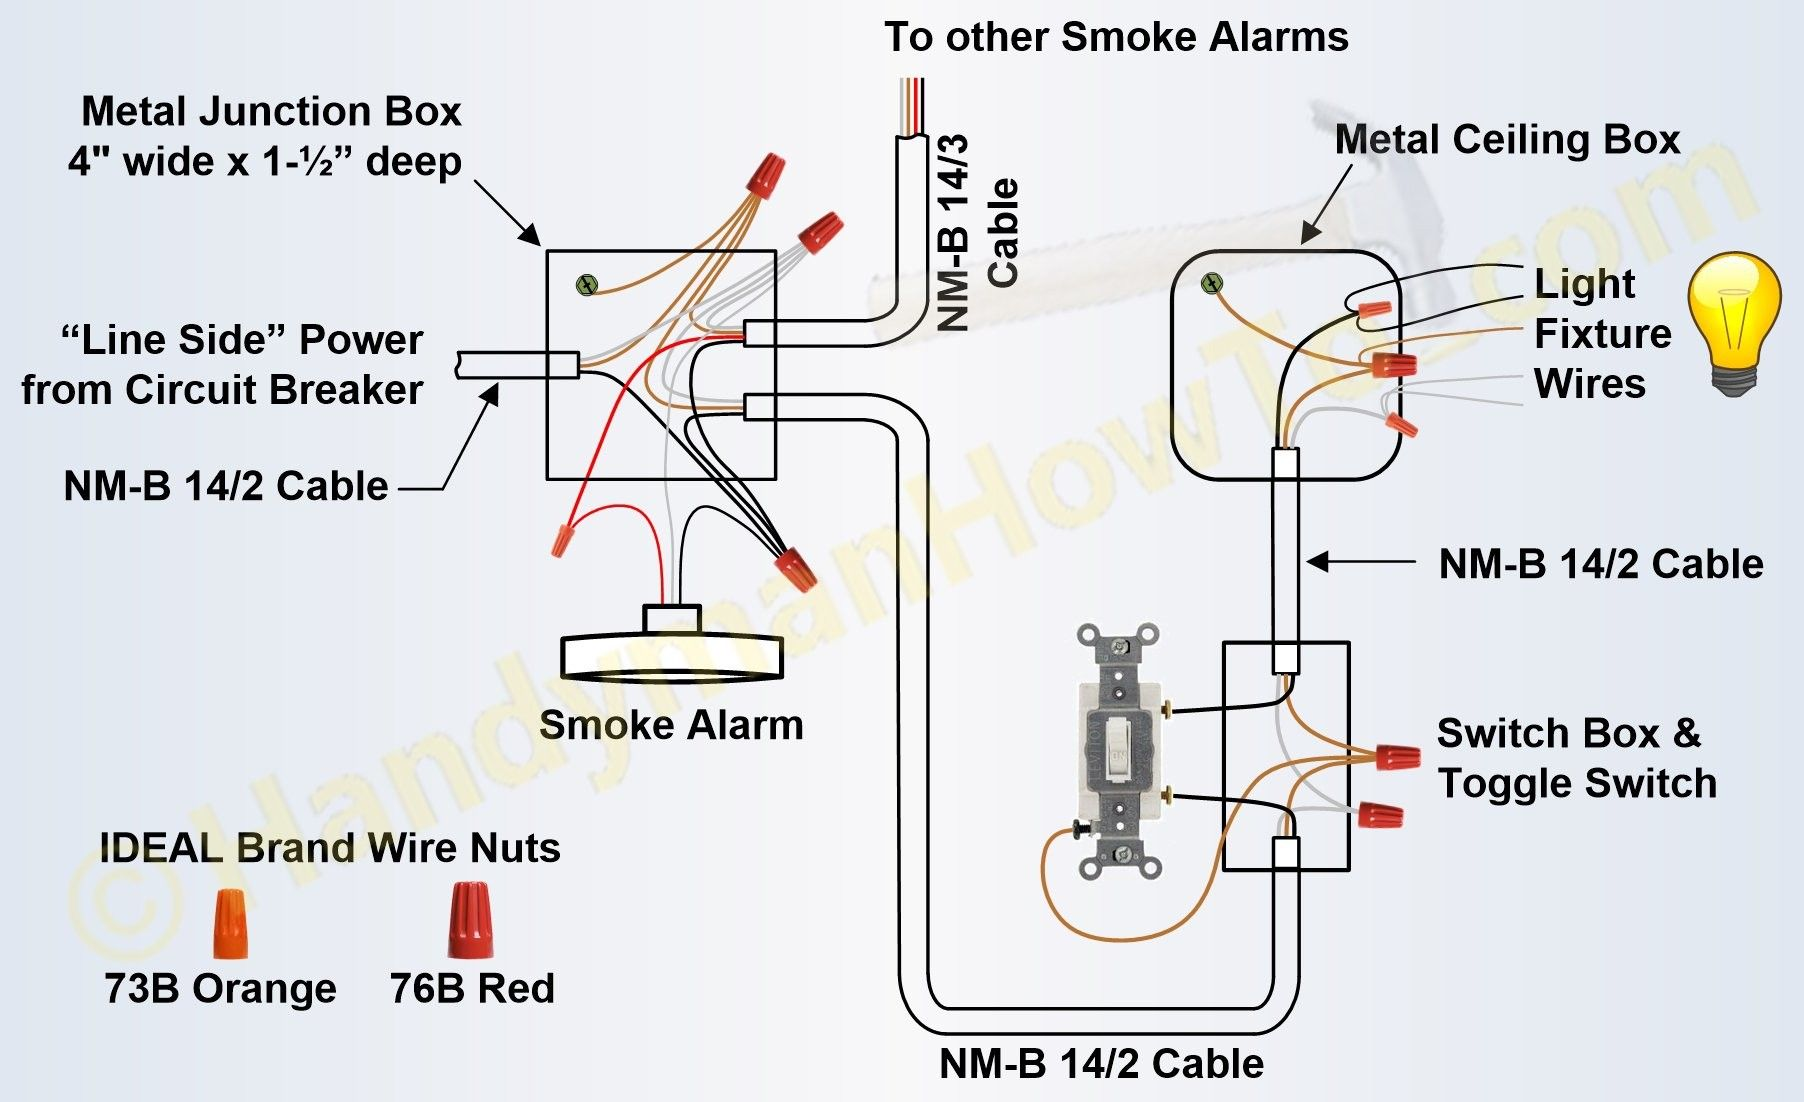 Unique Fire Alarm System Control Module Wiring Diagram Diagram Diagramtemplate Diagramsample Alarm Systems For Home Smoke Alarms Home Security Systems